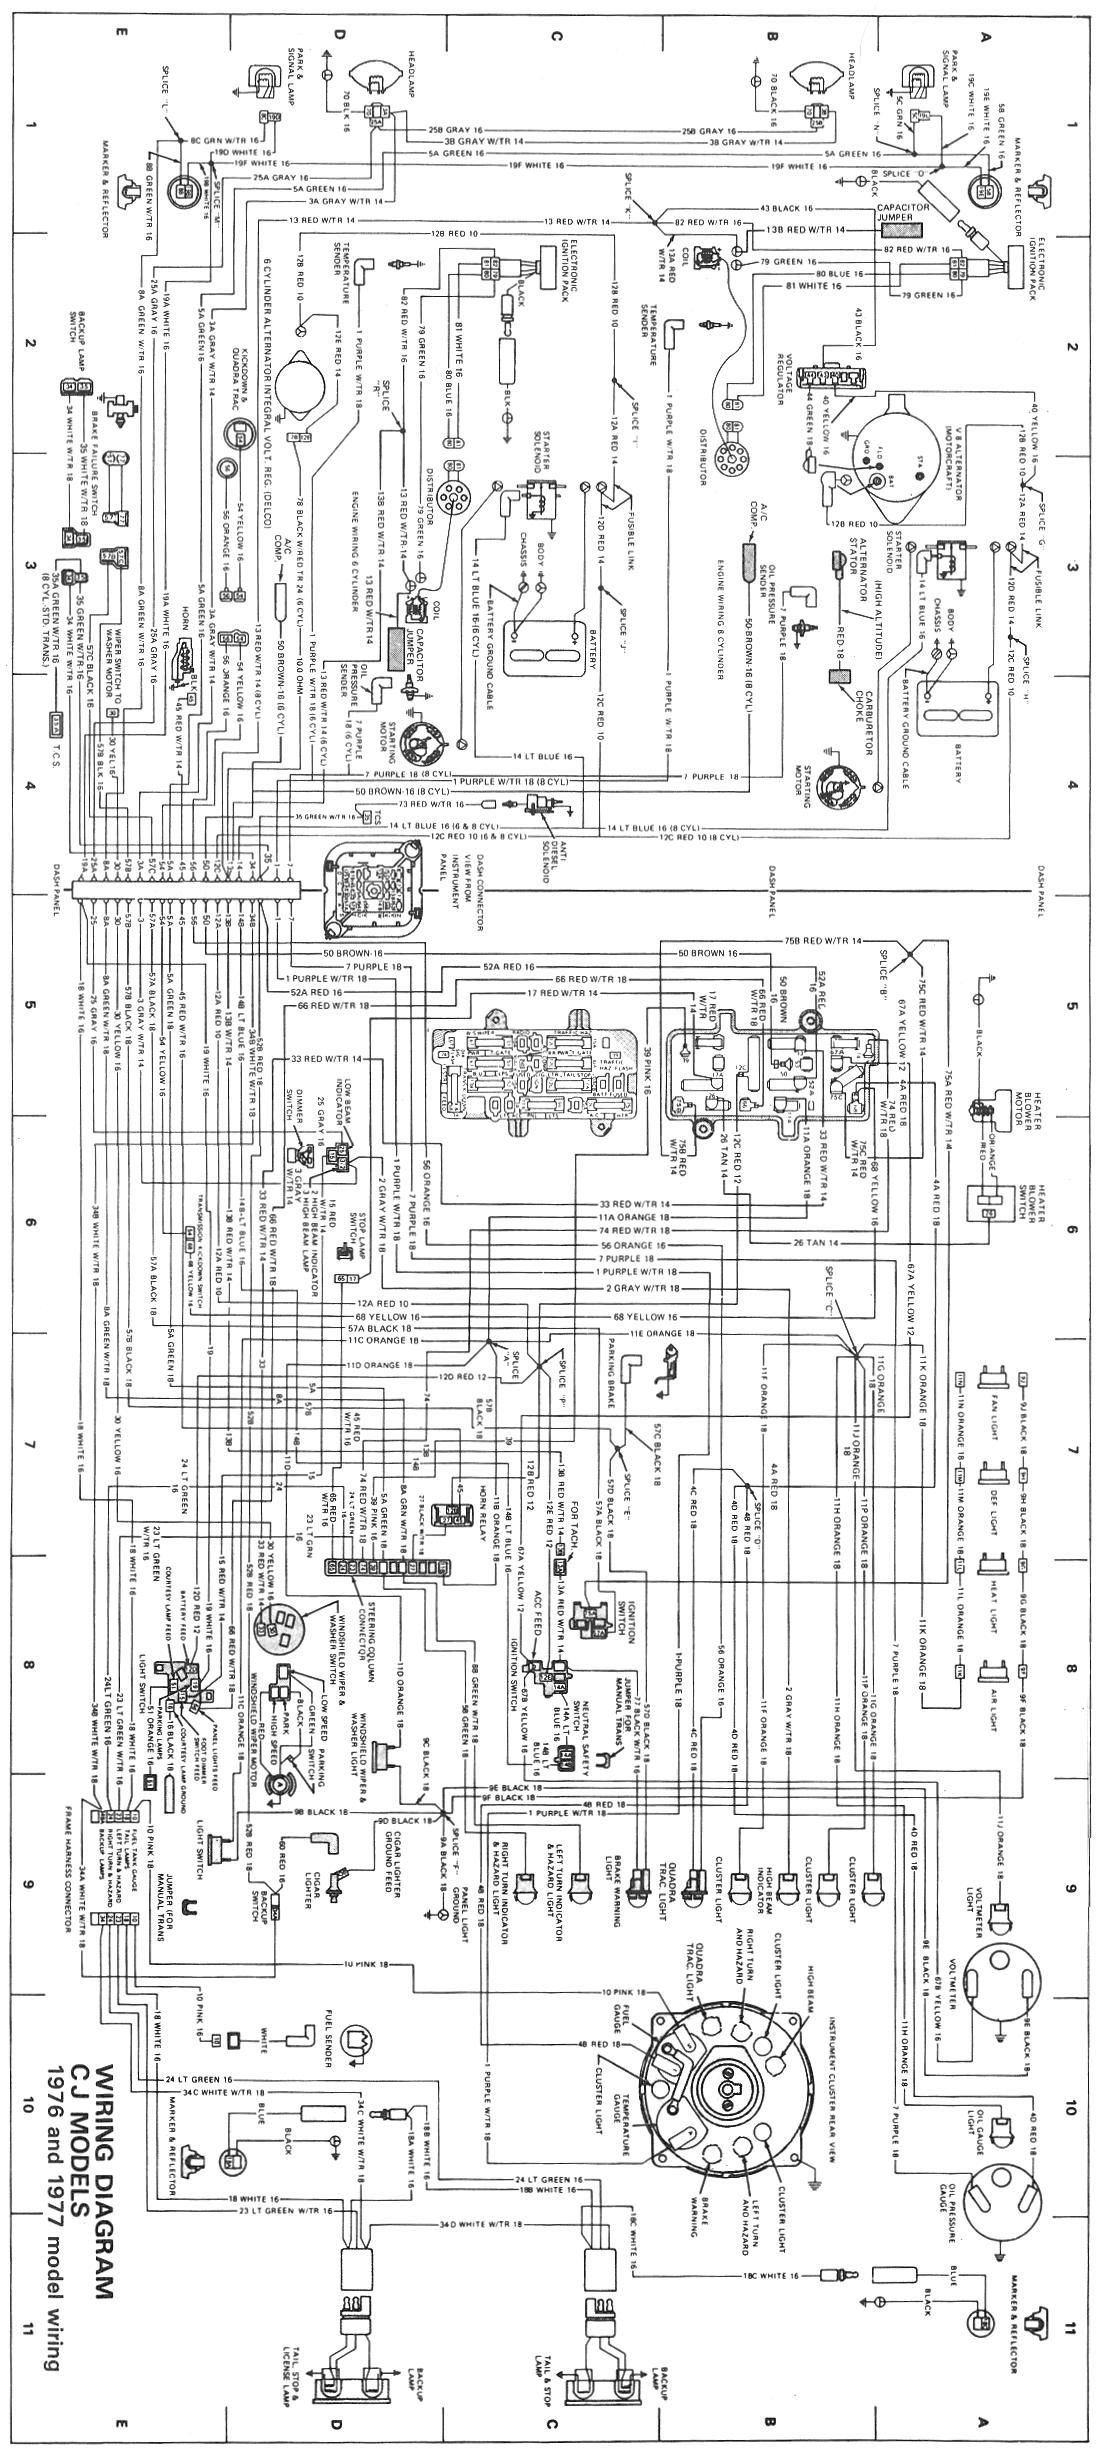 8d25ded6e3673519e155875e09844e5e cj wiring diagram 1976 1977 jpg 1,100�2,459 pixels 1976 jeep cj5 Painless Wiring Harness Diagram at alyssarenee.co